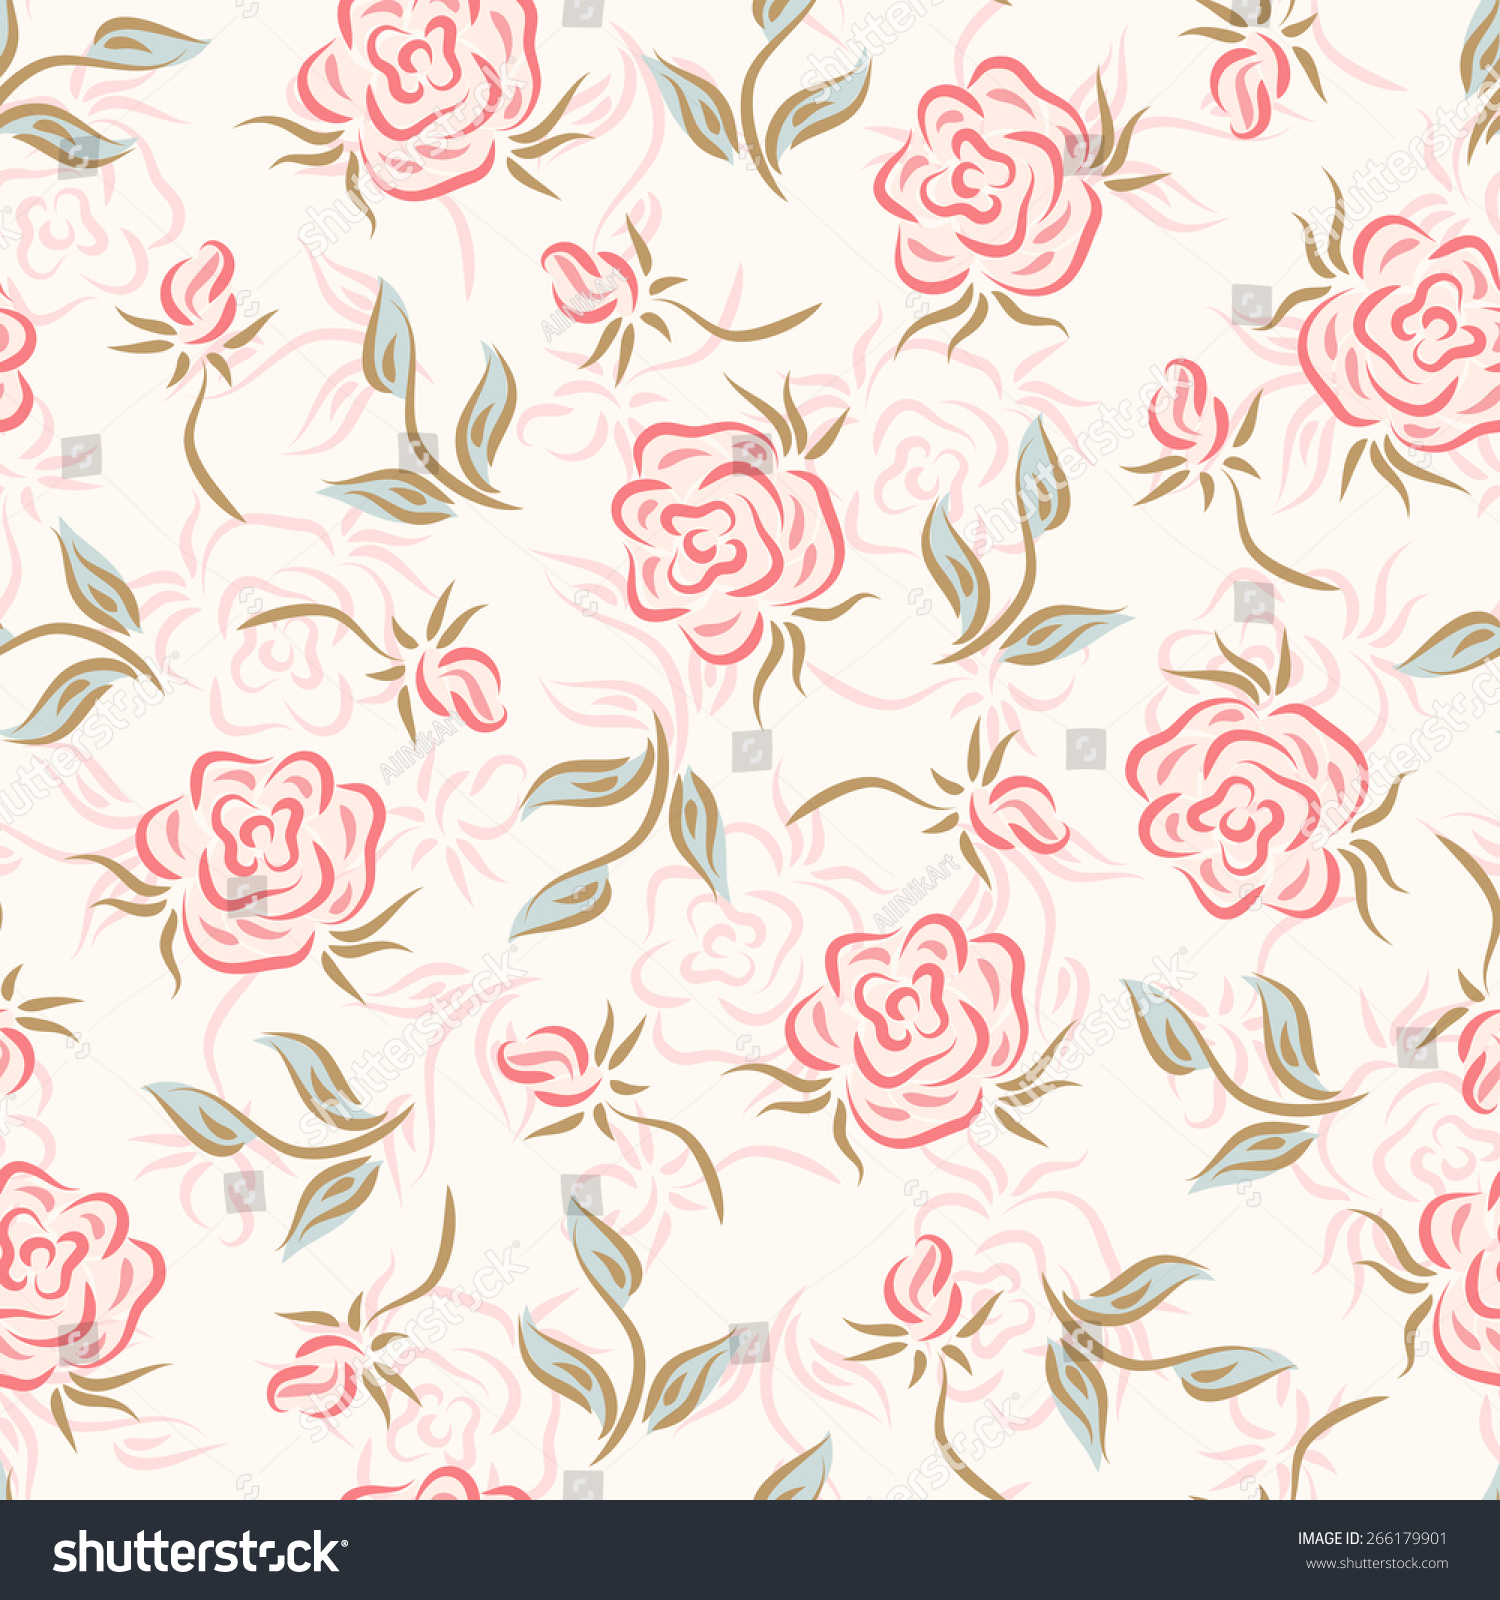 Flowers Floral Seamless Pattern Roses Light Vintage Backgrounds